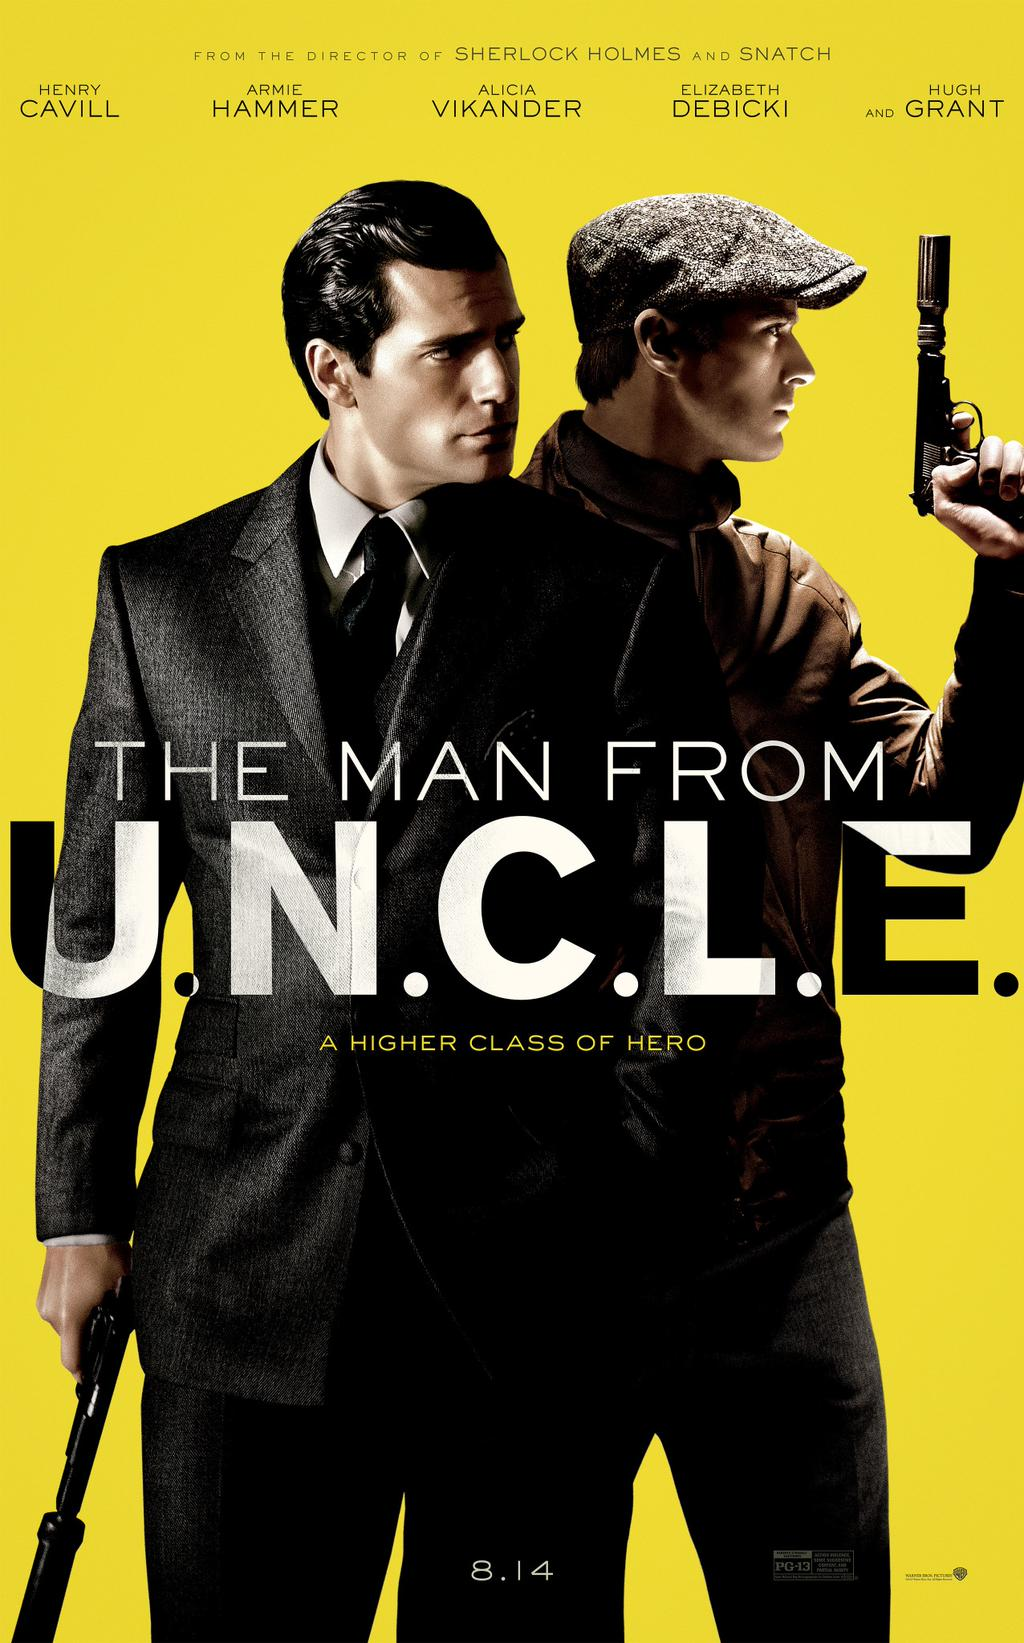 The Man from U.N.C.L.E. (Movie) Review 7